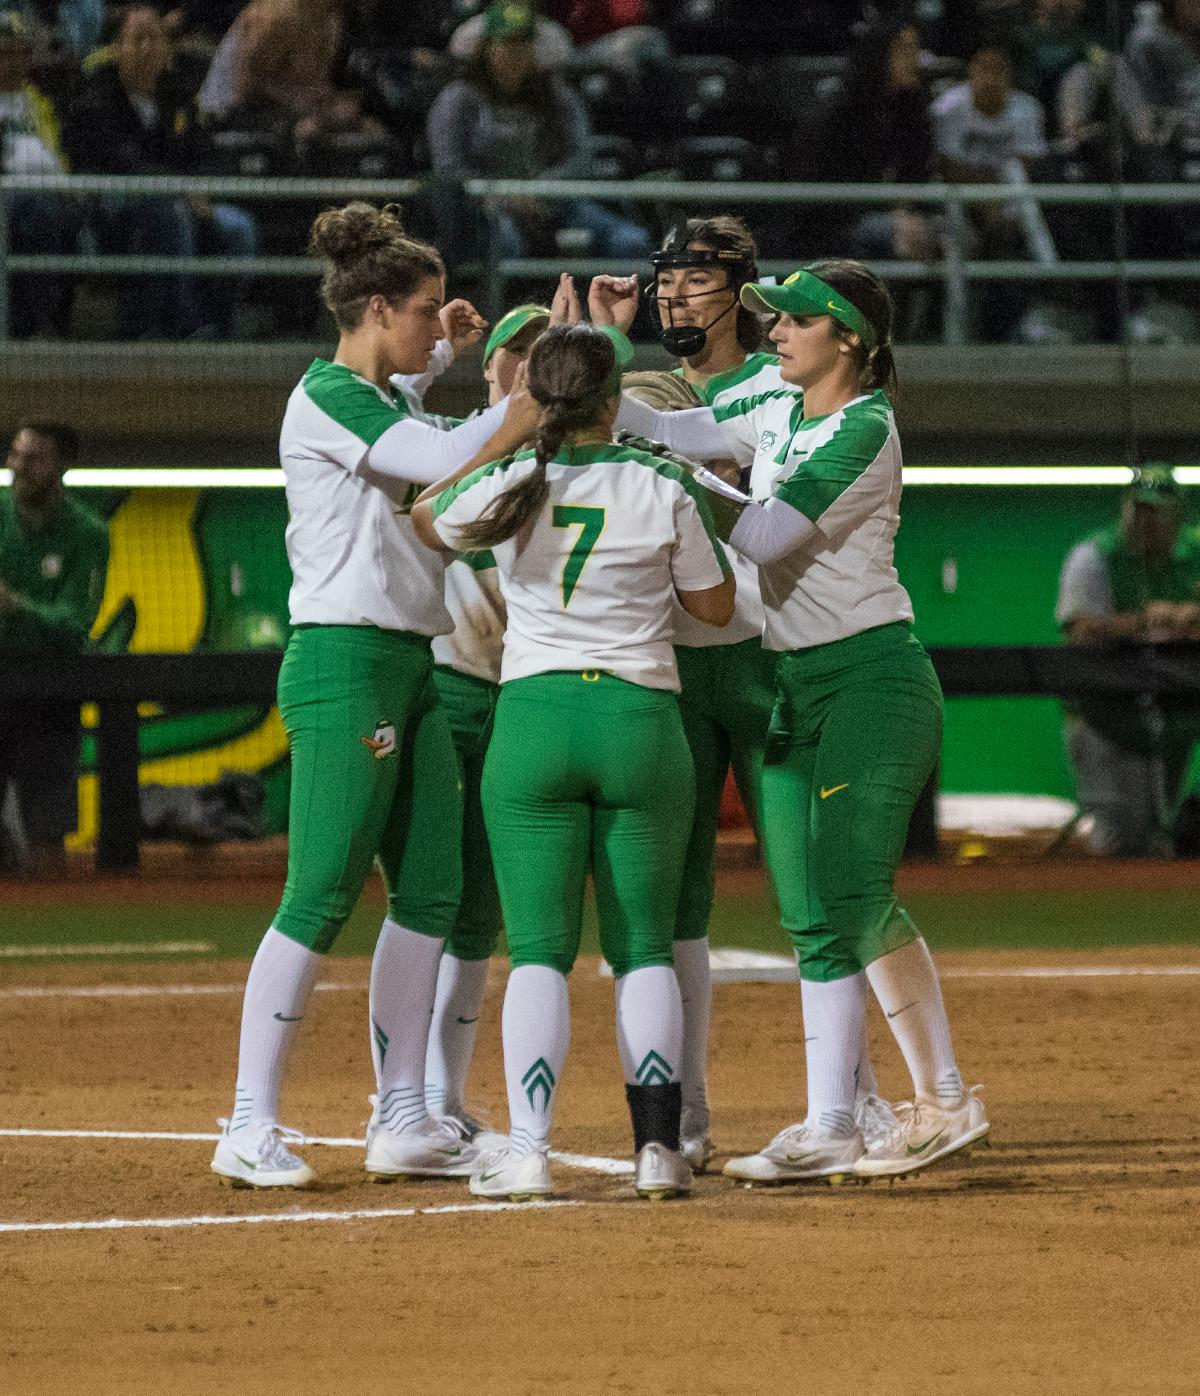 The Oregon Ducks teammates high five after a time out. The No. 3 Oregon Ducks defeated the University of Illinois Chicago Flames 13-0 with the run-rule on Saturday night at Jane Sanders Stadium. The Ducks scored in every inning and then scored nine runs at the bottom of the fourth. The Oregon Ducks are now 22-0 in NCAA regional games. The Oregon Ducks play Wisconsin next on Saturday, May 20 at 2pm at Jane Sanders Stadium. Photo by Cheyenne Thorpe, Oregon News Lab